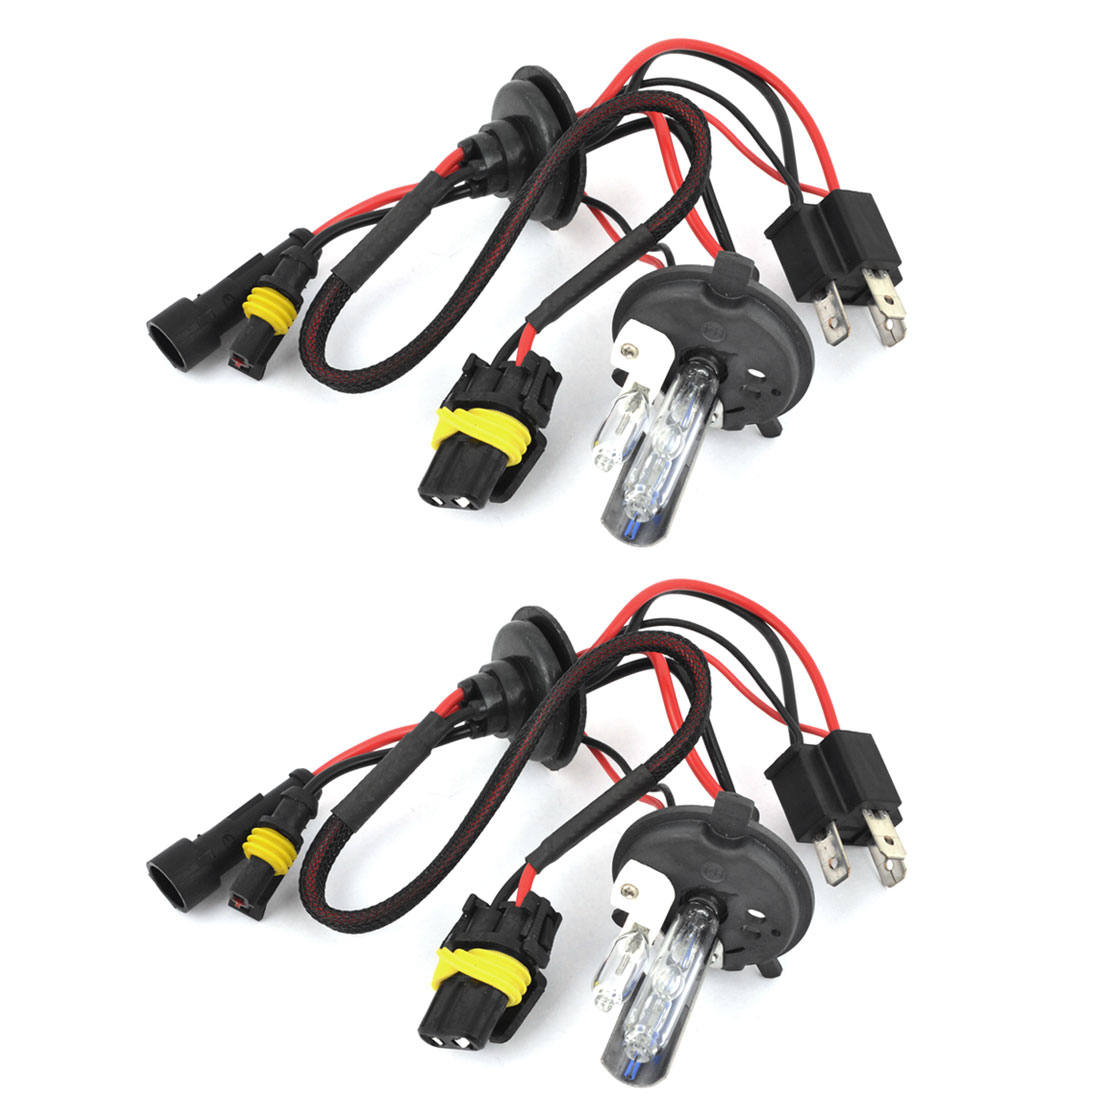 2PCS 12V Xenon HID H4 8000K Hi/Lo Beam Headlamp Light Bulbs